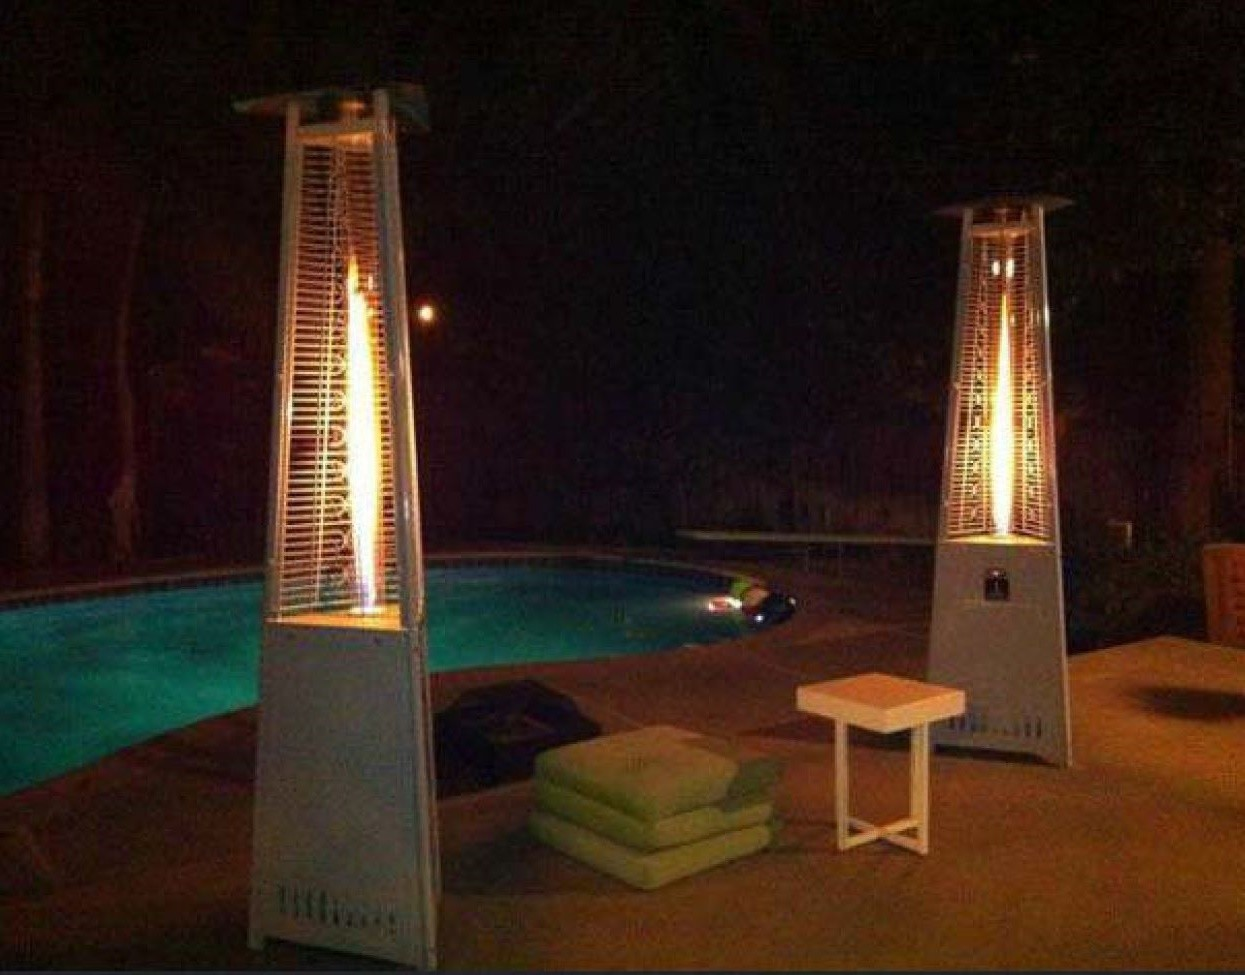 http://patioheaterdubai.com/wp-content/uploads/2016/09/Outdoor-Gas-Heater-in-Swimming-Pool.jpg